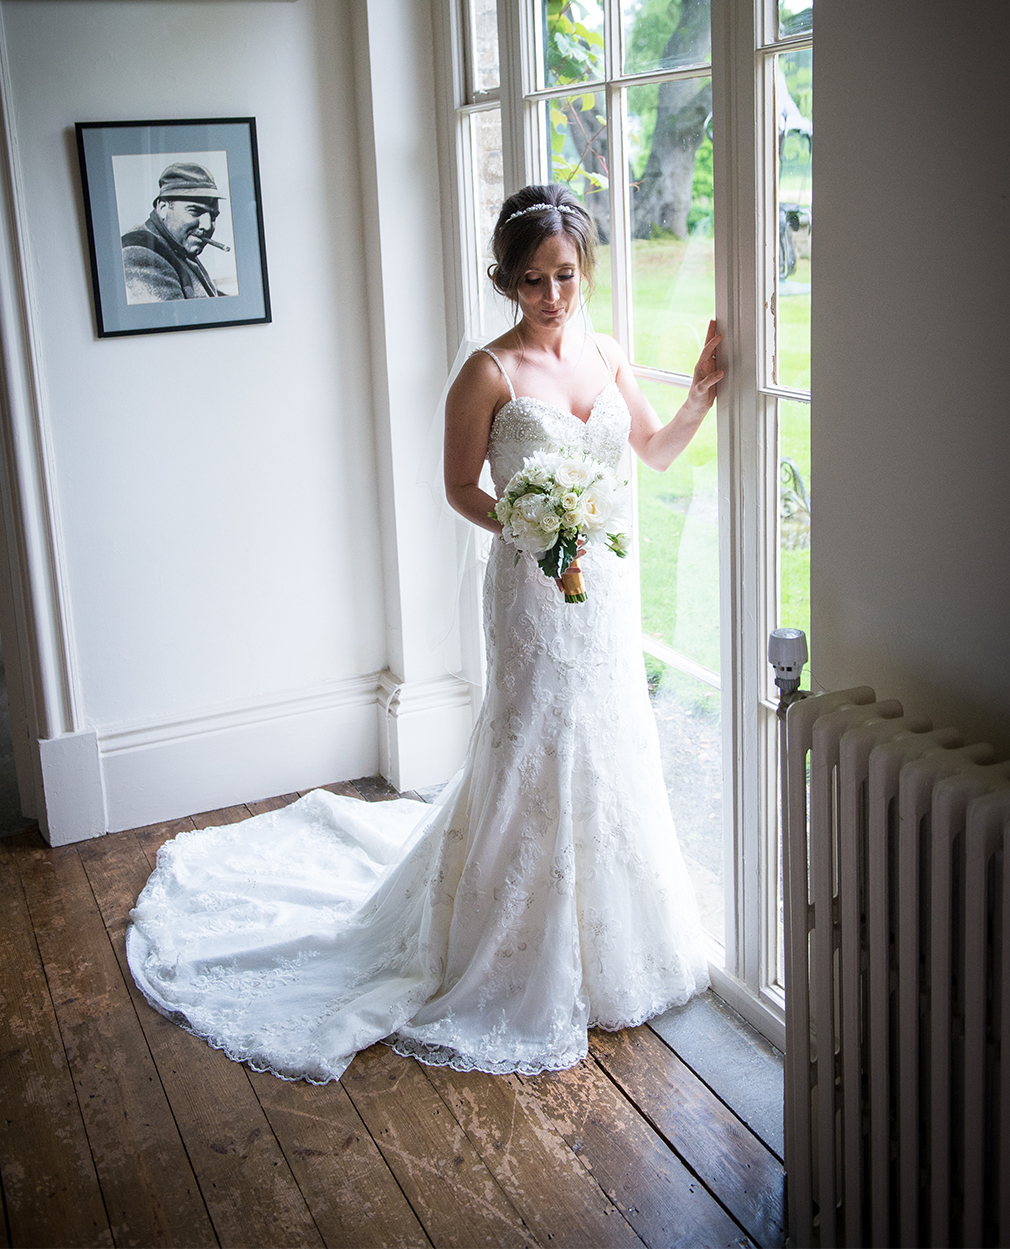 Madeline chose a fishtail wedding dress after trying on lots of designer wedding dresses